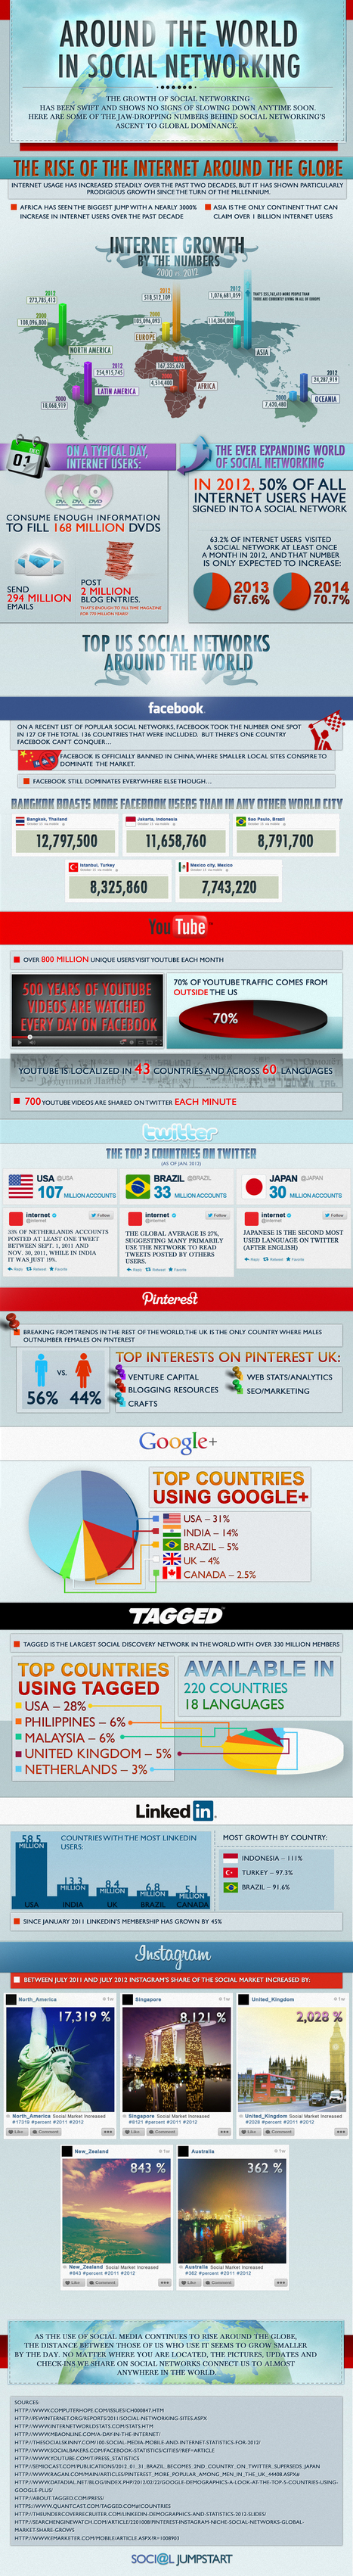 Facebook, Twitter, Pinterest, Instagram – How Big Is Social Media Around The World? | Wall Of Frames | Scoop.it